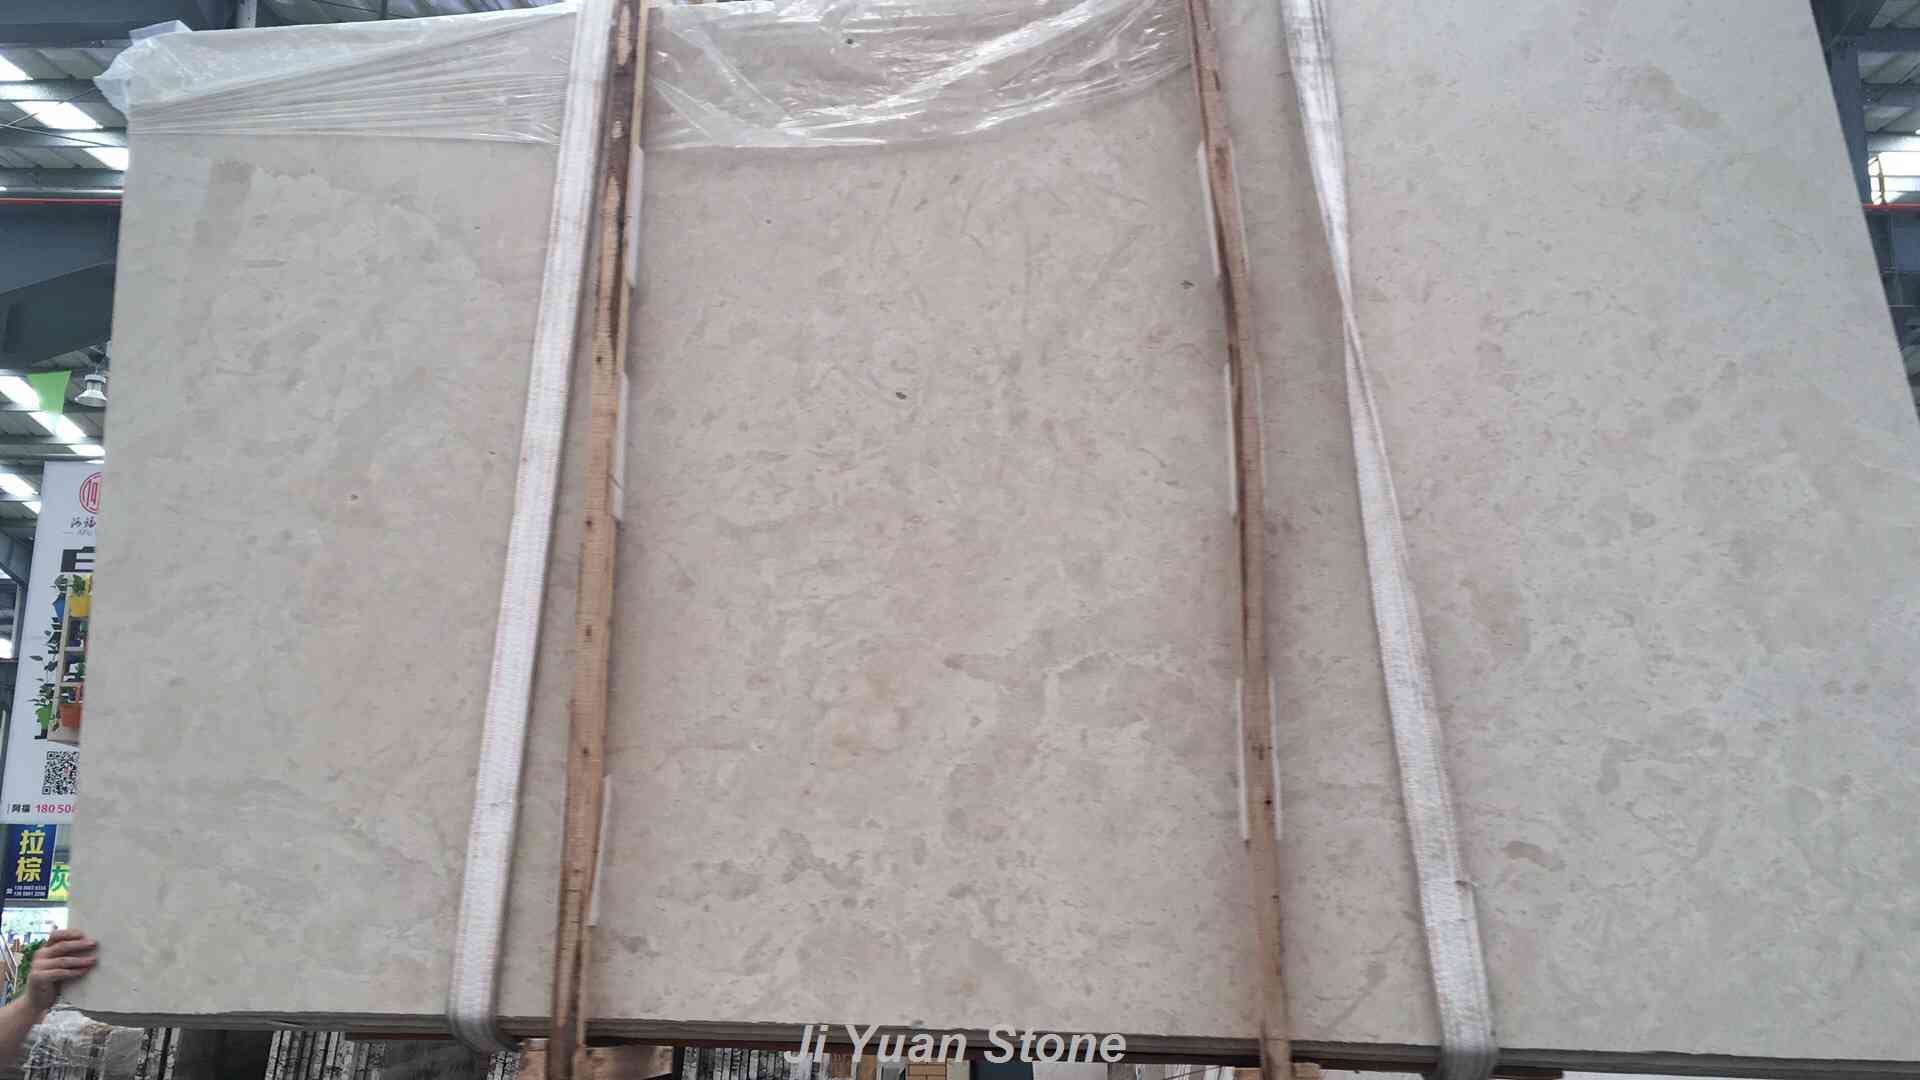 chalk limestone,travertine limestone,installing marble tile,limestone rock formation,cheap limestone tiles,buy limestone rocks,source of limestone,where to get limestone rocks